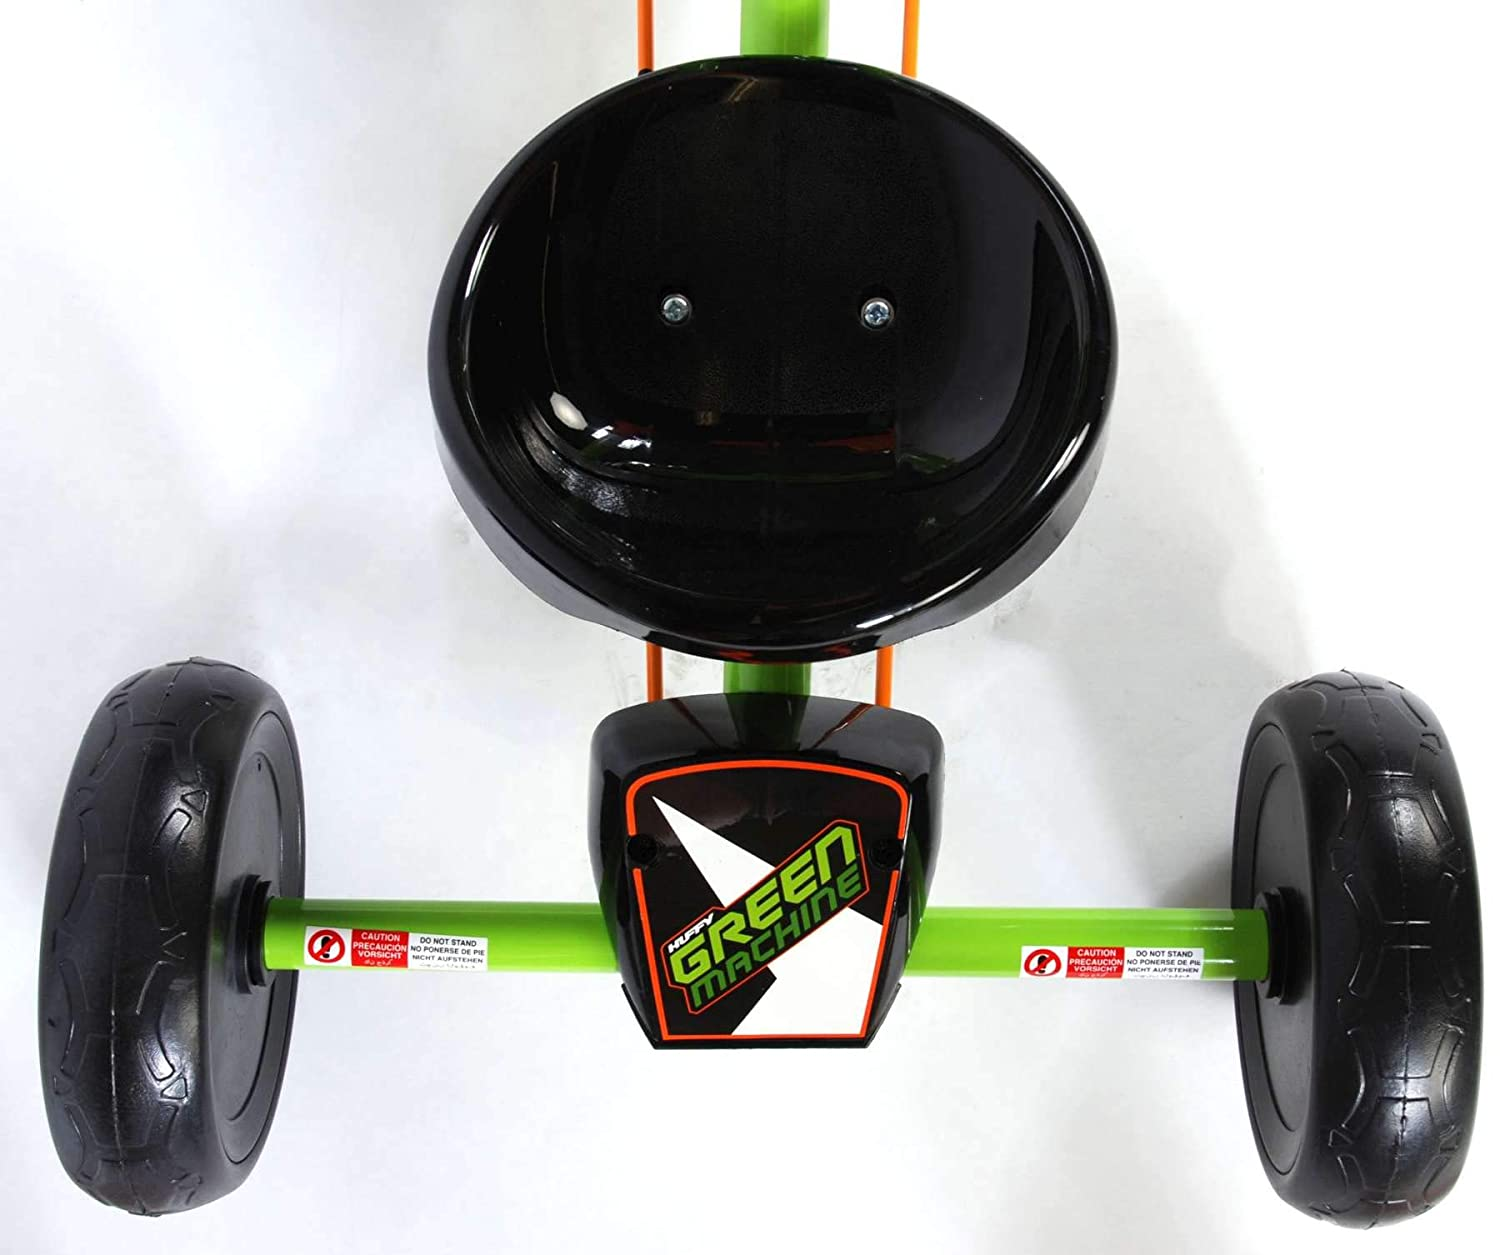 Niños Drift Trike Huffy The Green Machine Mini Kart Drifter: Amazon.es: Juguetes y juegos